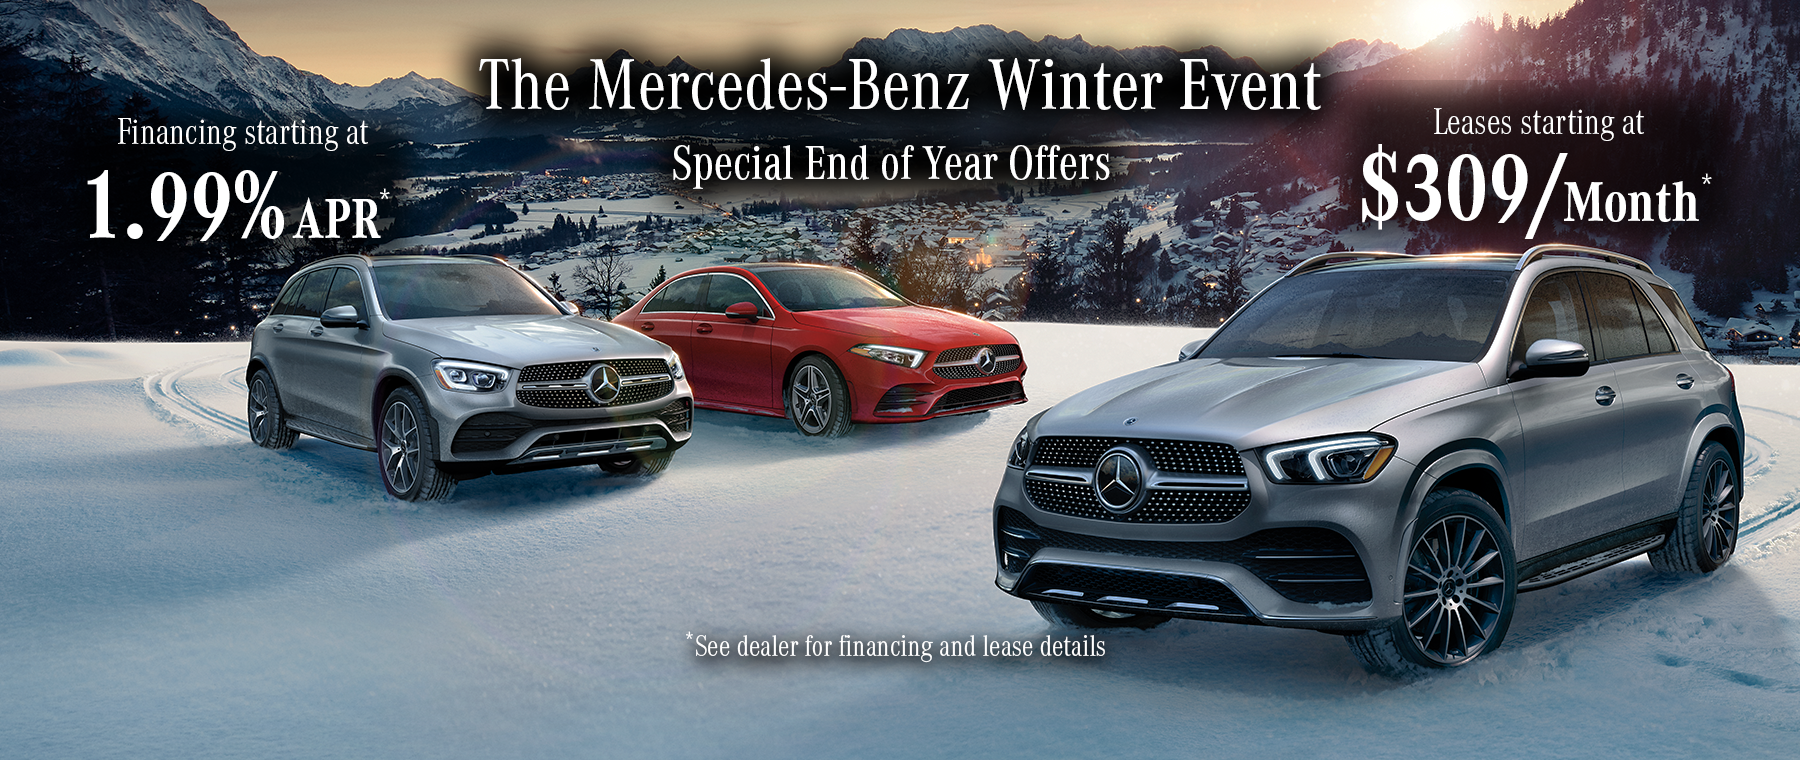 Winter Event - leases starting at $309 and financing starting at 1.99%